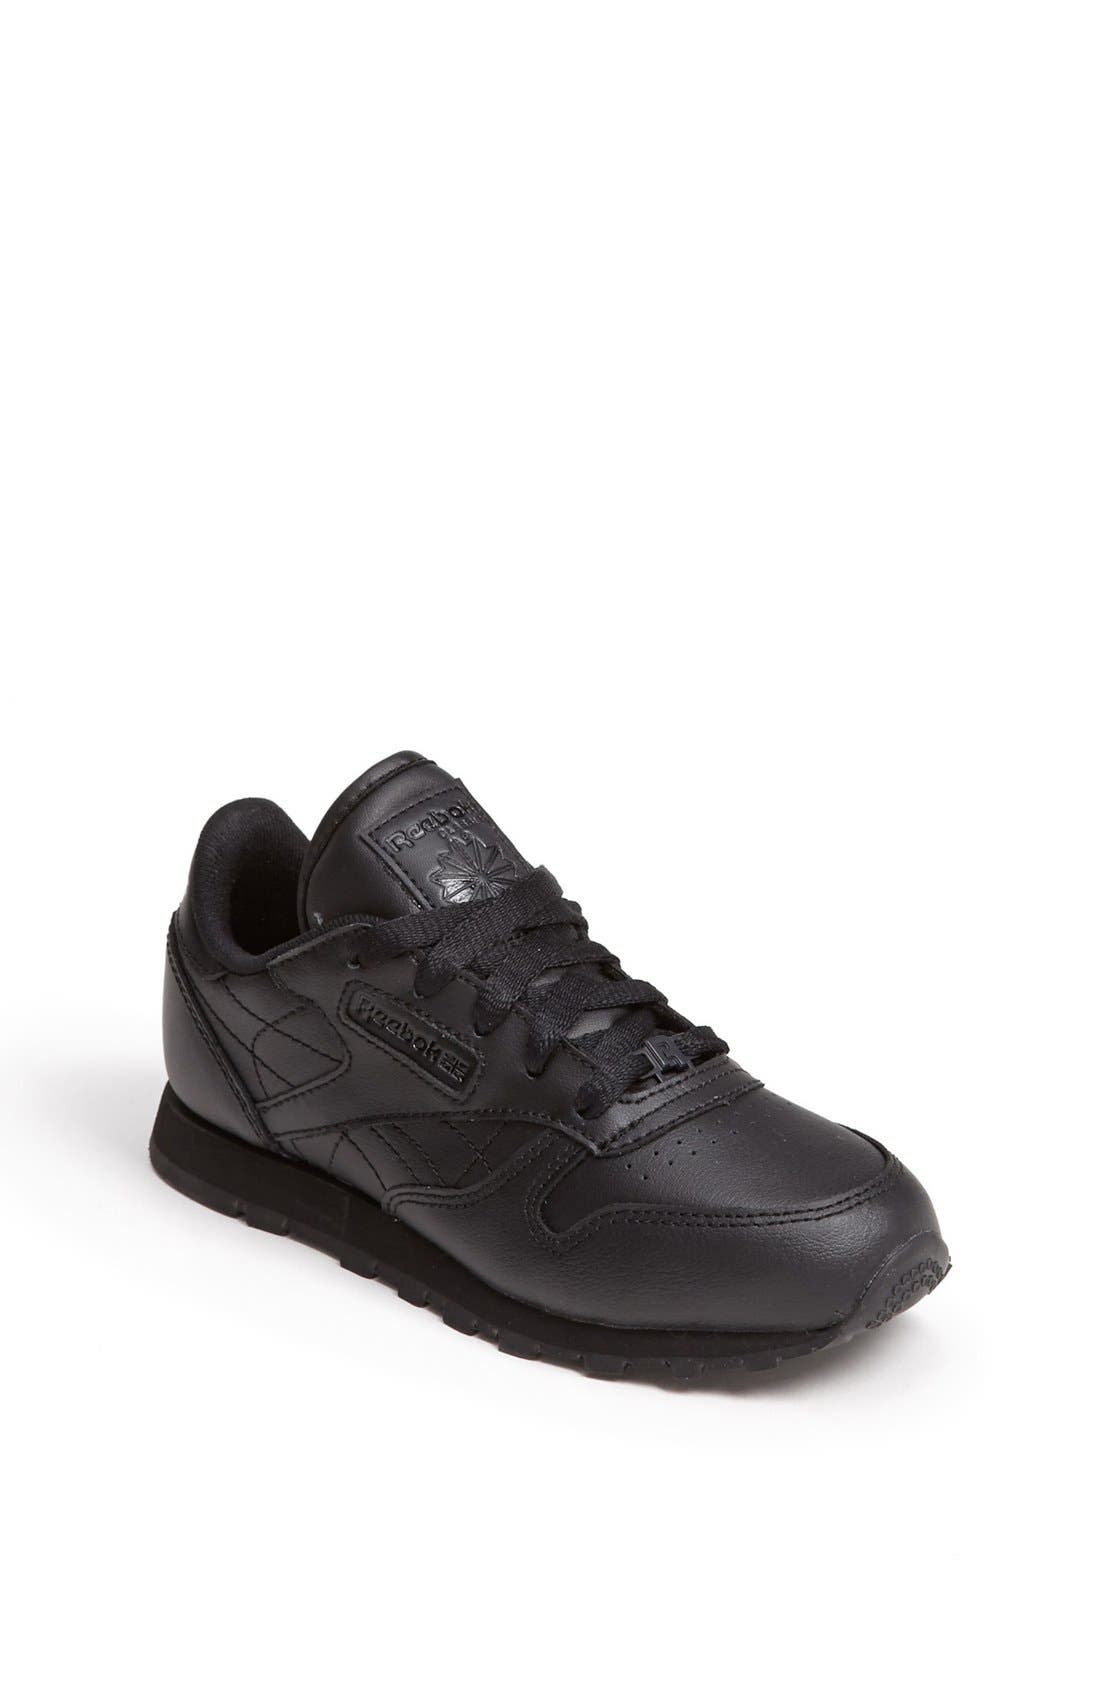 Main Image - Reebok 'Classic' Leather Sneaker (Toddler & Little Kid)